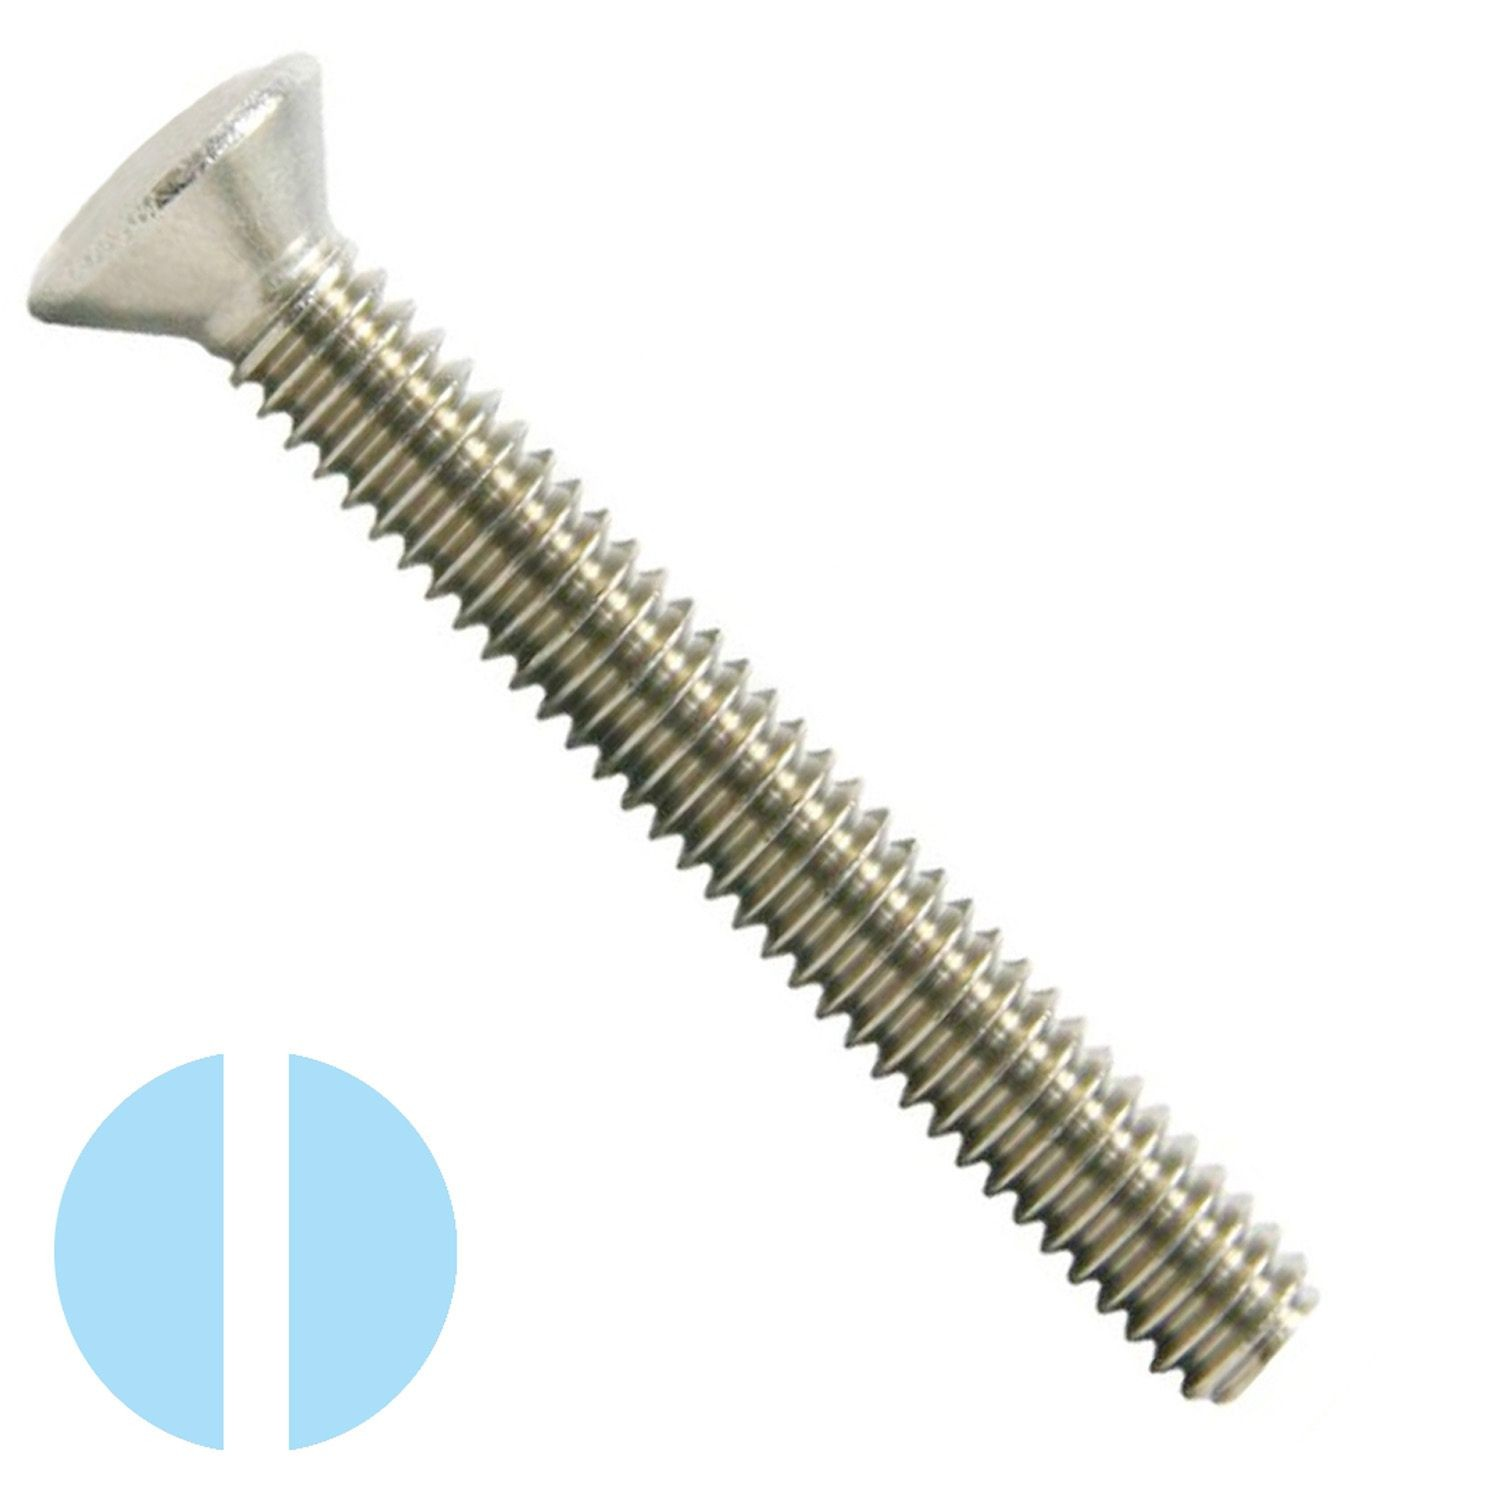 "#10-32 x 1"" Stainless Steel Slotted Oval Head Machine Screw 18-8"